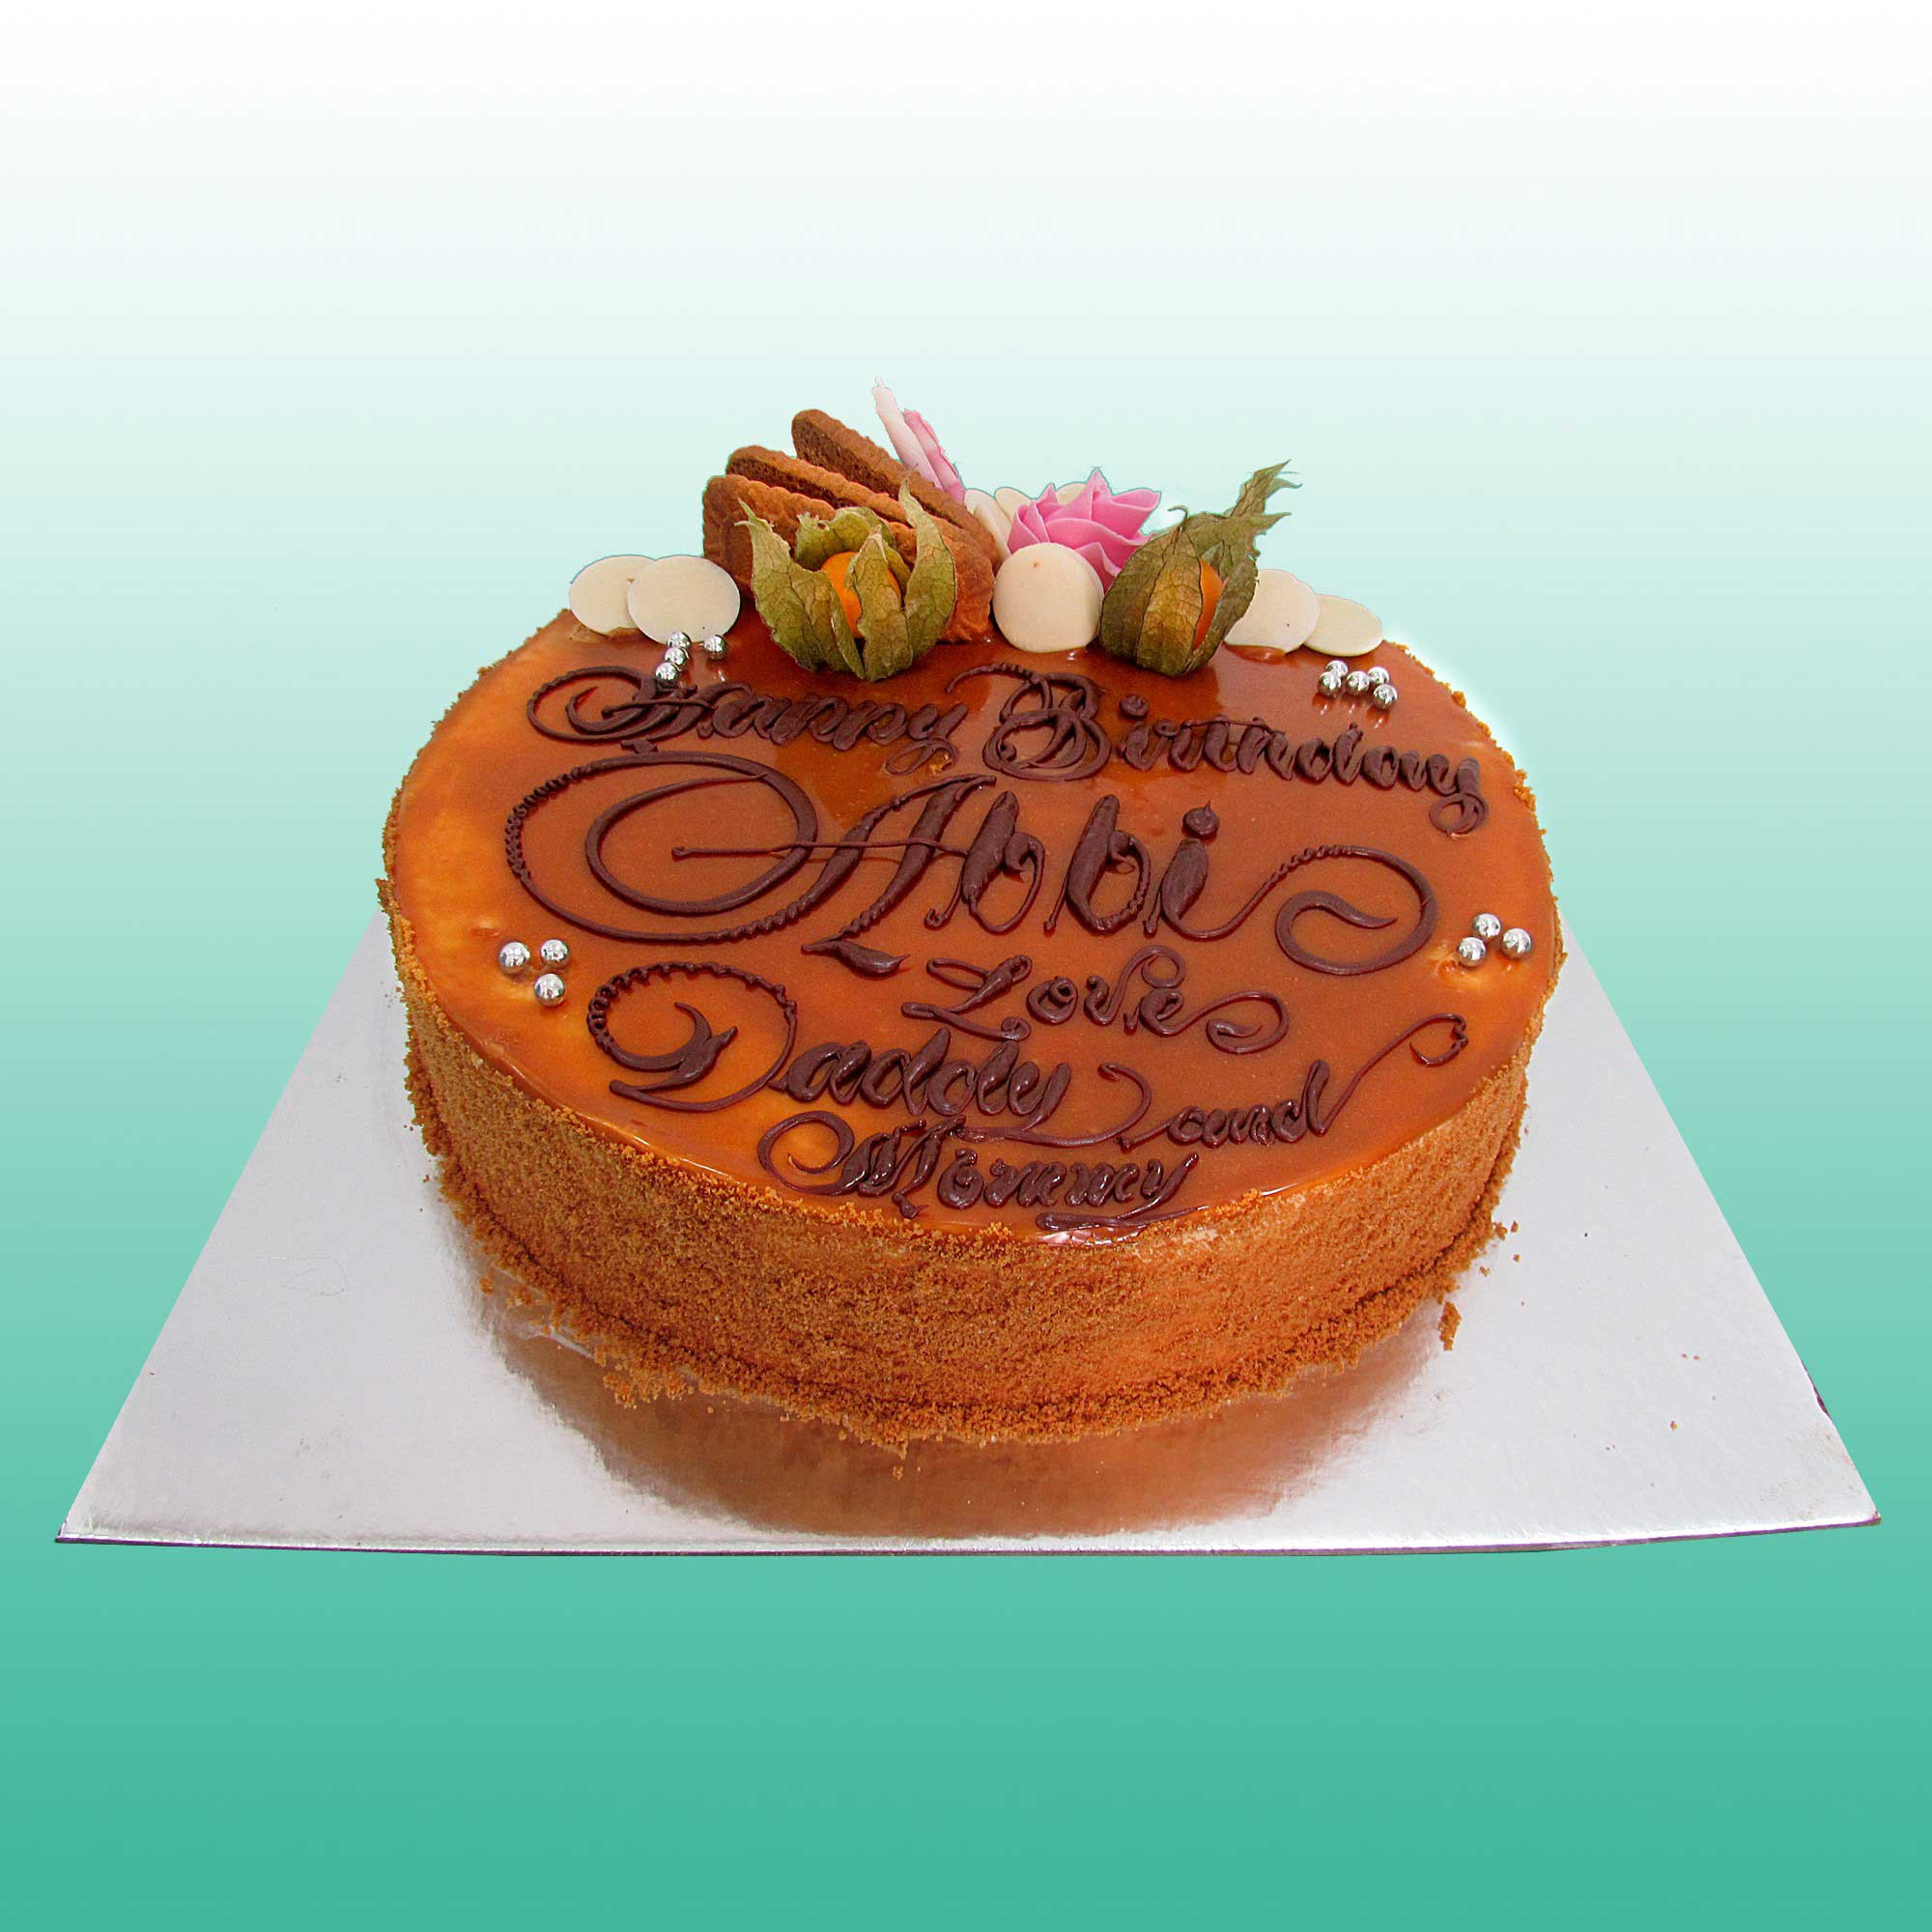 Best ideas about Send Birthday Cake . Save or Pin Send Birthday Cake Cake Shop Cake delivery Now.